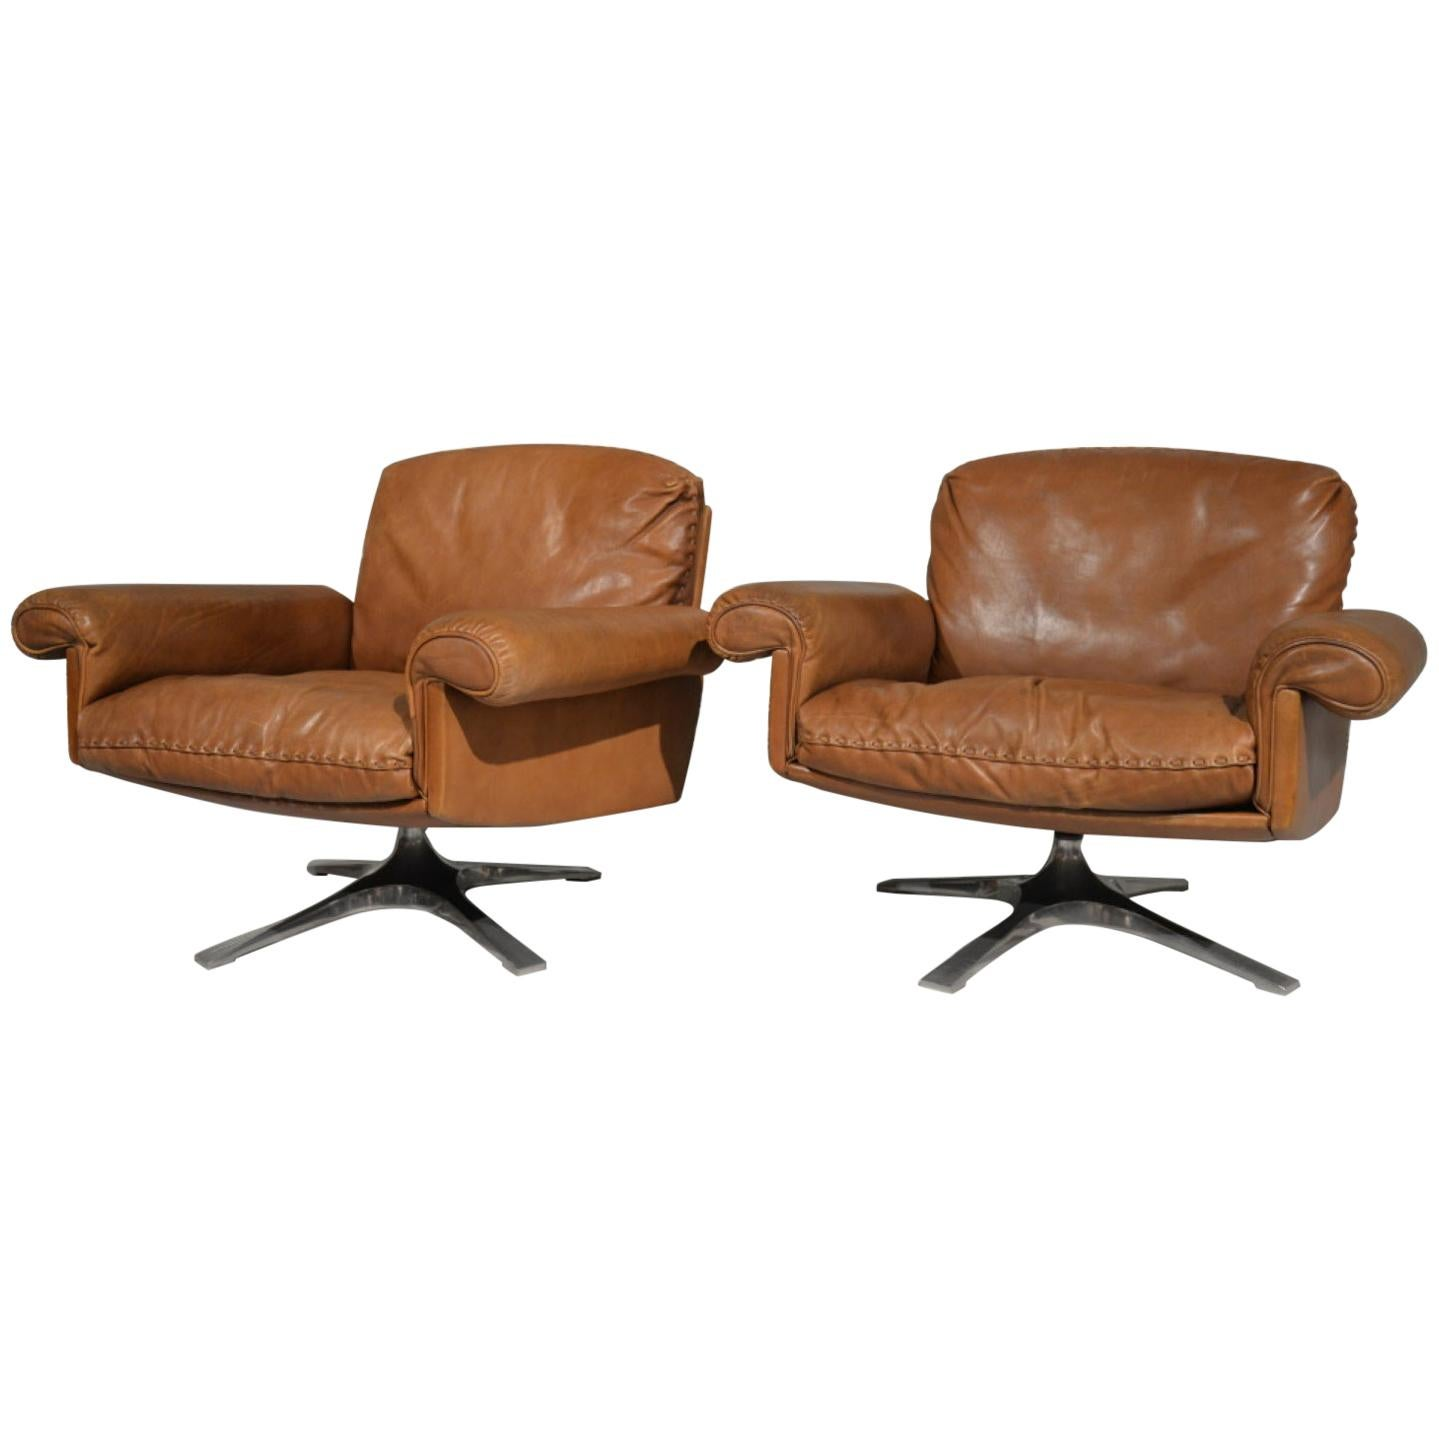 Vintage De Sede DS 31 Leather Swivel Lounge Armchairs, 1970s